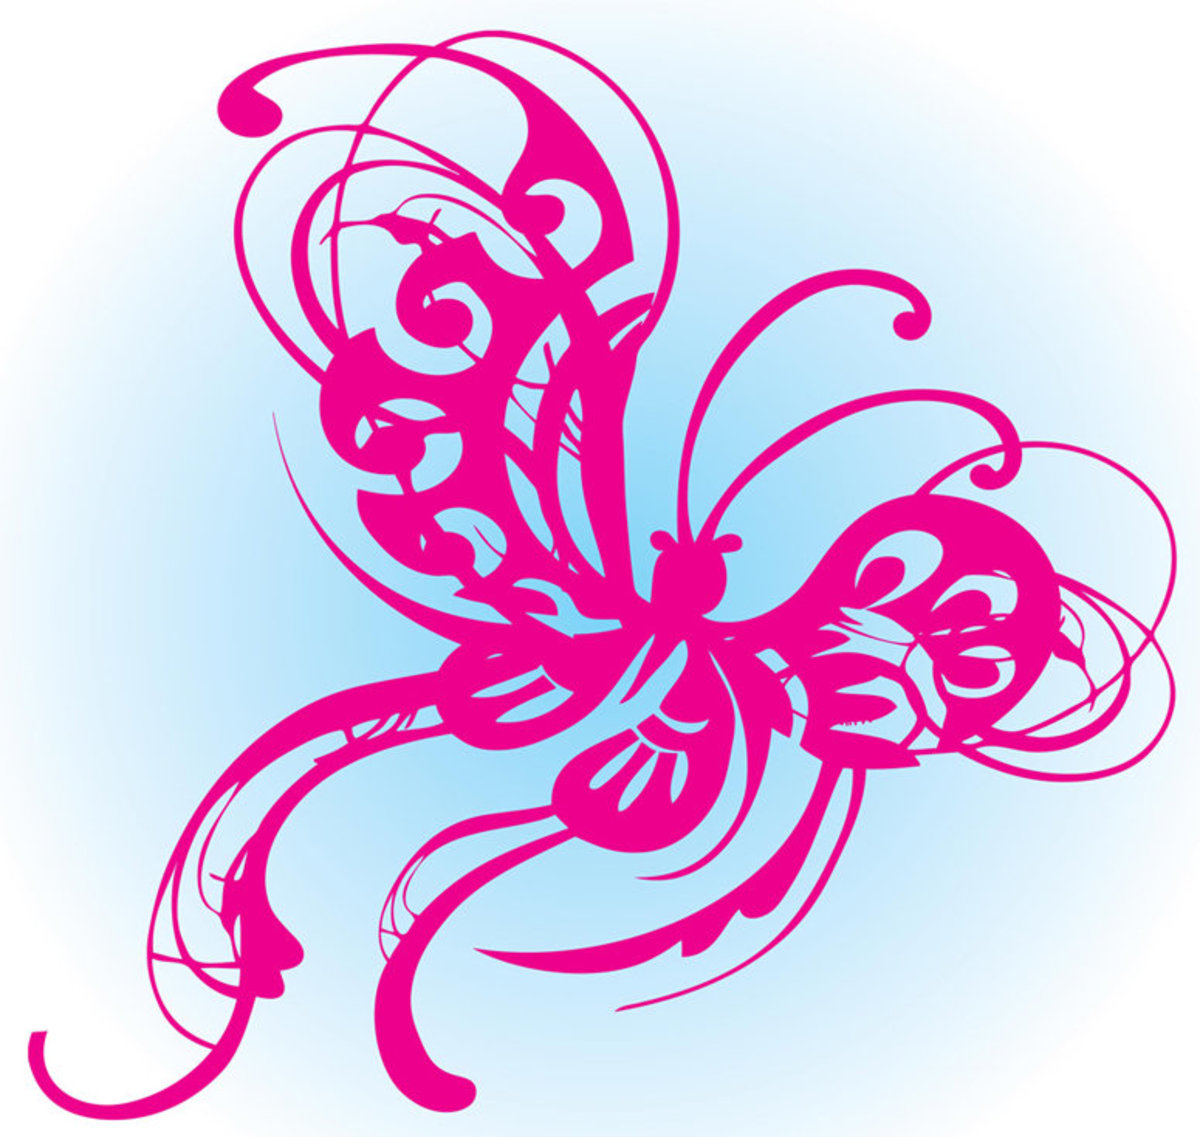 Butterfly Design Sketch